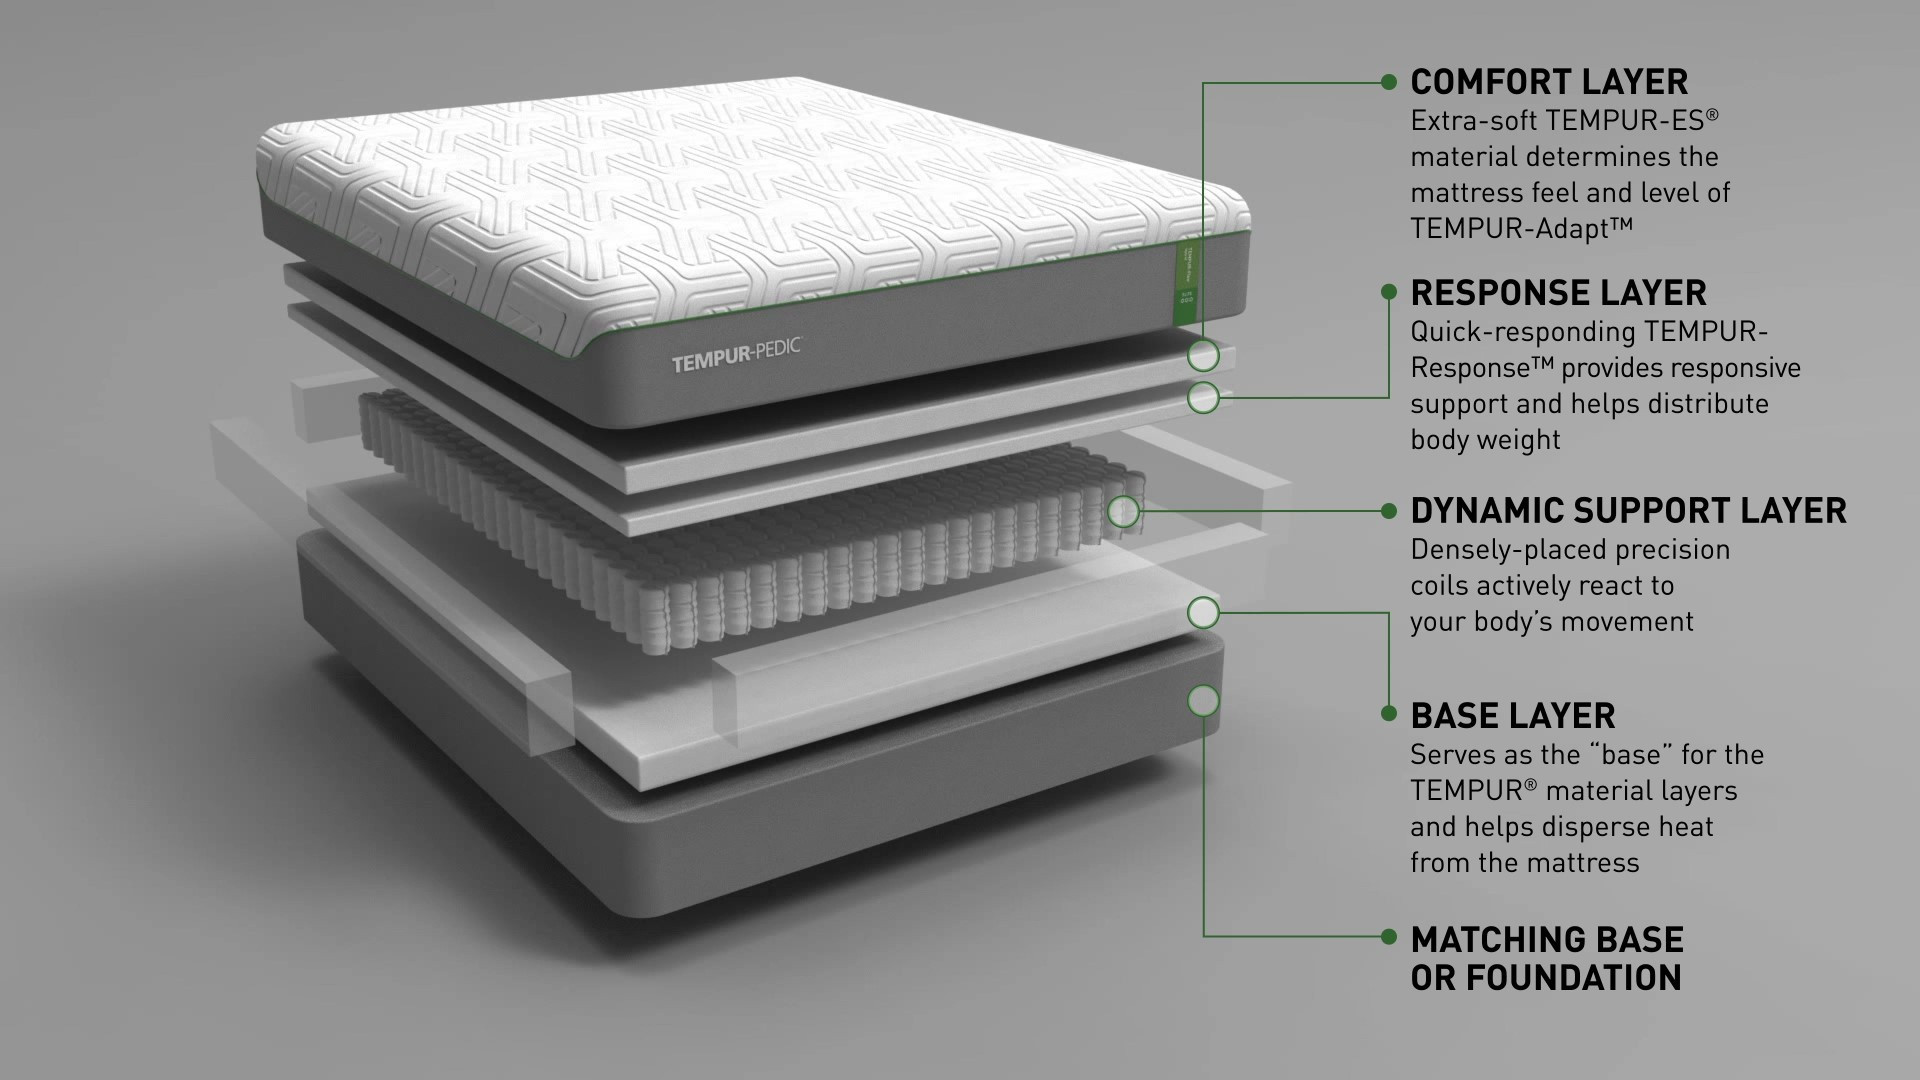 A diagram showing the layers of a Tempur-Flex Elite mattress